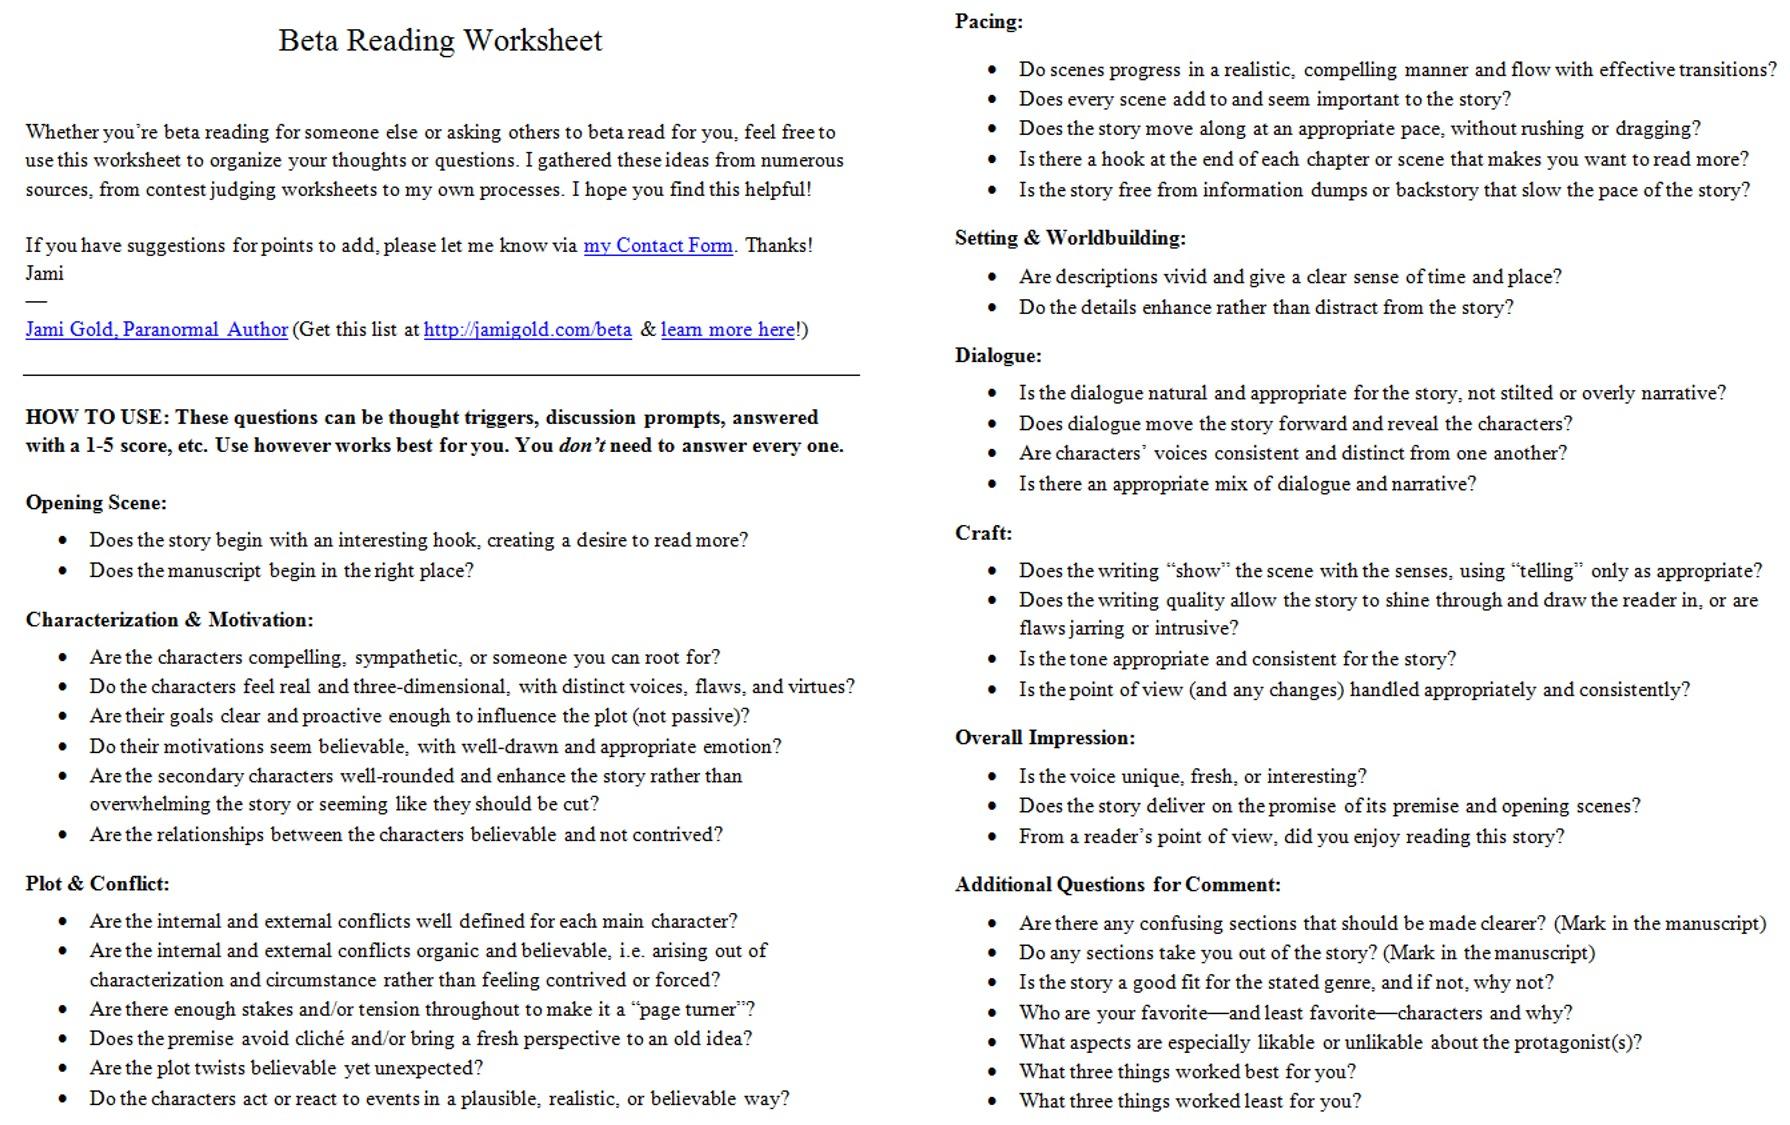 Aldiablosus  Fascinating Worksheets For Writers  Jami Gold Paranormal Author With Magnificent Screen Shot Of The Twopage Beta Reading Worksheet With Divine Telling Sentences Worksheets Also Finding A Common Denominator Worksheet In Addition Two Digit Subtraction With Regrouping Worksheet And Letter M Worksheets For Kindergarten As Well As Short Vowel Sounds Worksheet Additionally Grammar Th Grade Worksheets From Jamigoldcom With Aldiablosus  Magnificent Worksheets For Writers  Jami Gold Paranormal Author With Divine Screen Shot Of The Twopage Beta Reading Worksheet And Fascinating Telling Sentences Worksheets Also Finding A Common Denominator Worksheet In Addition Two Digit Subtraction With Regrouping Worksheet From Jamigoldcom